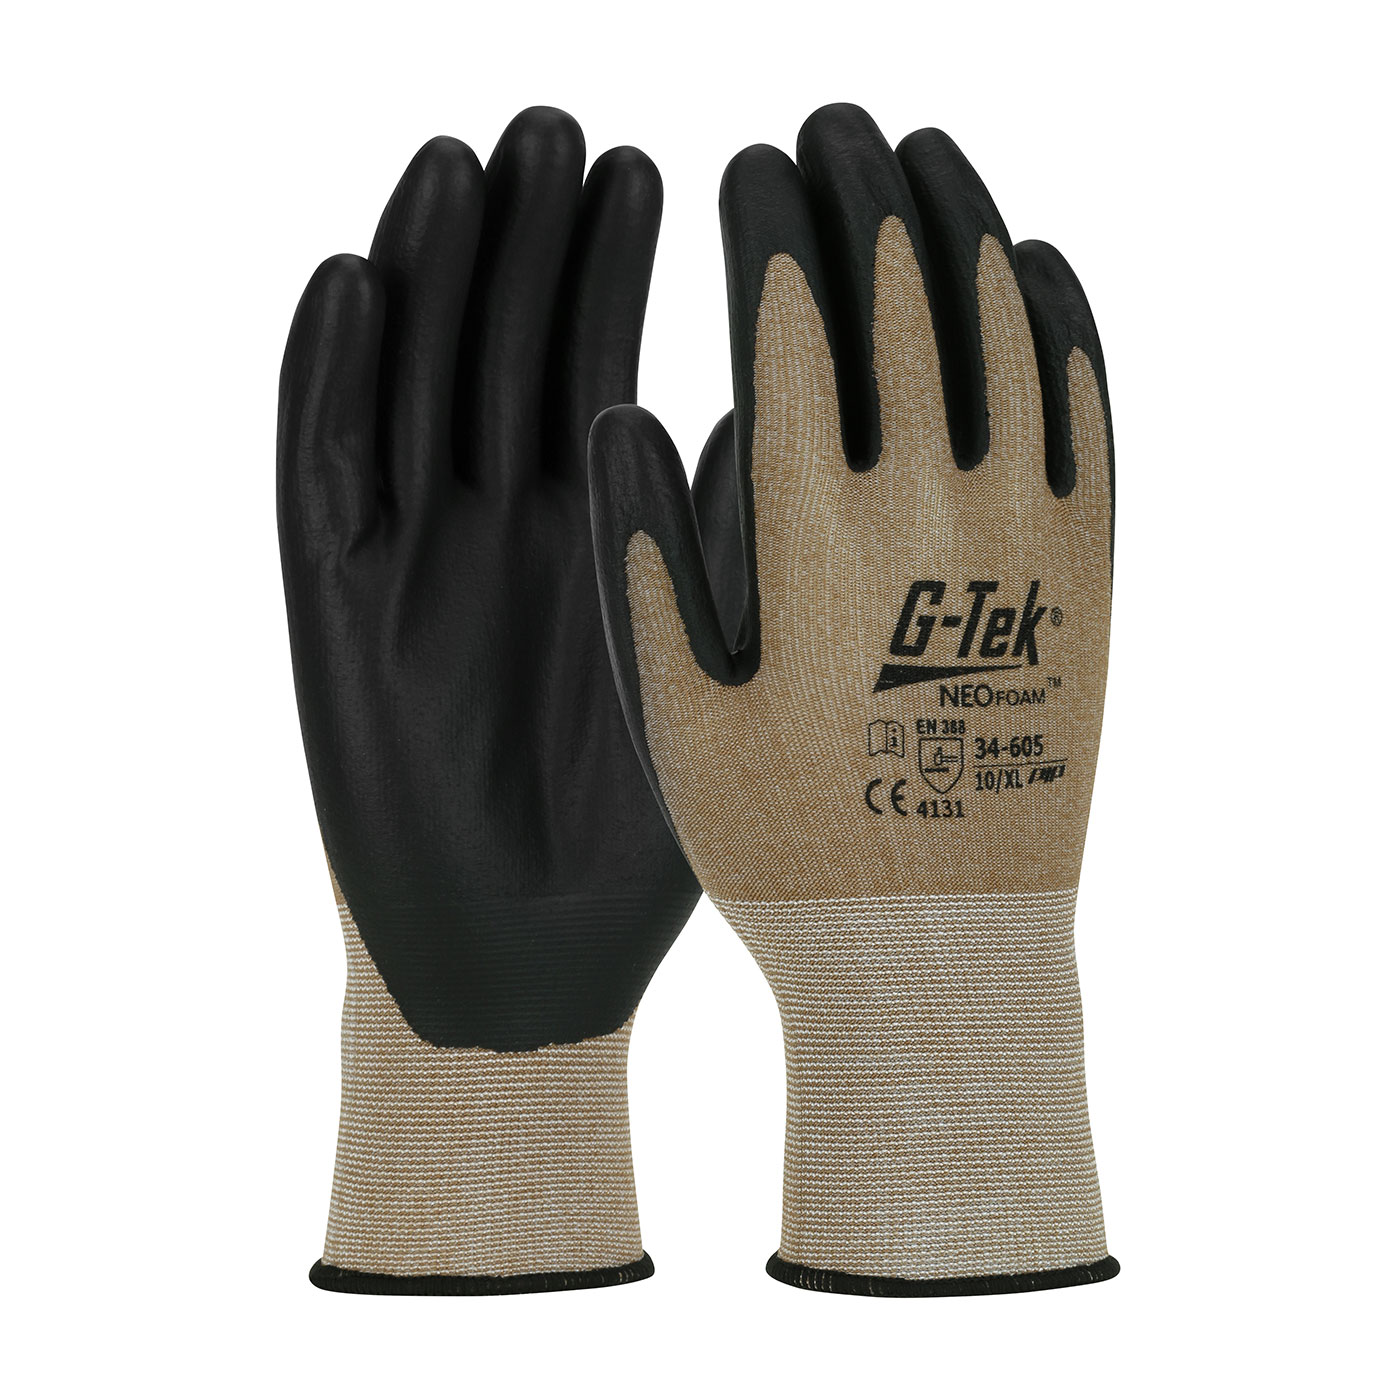 #34-605 PIP® G-Tek® Neofoam Coated 15-Gauge Seamless Nylon Knit Gloves